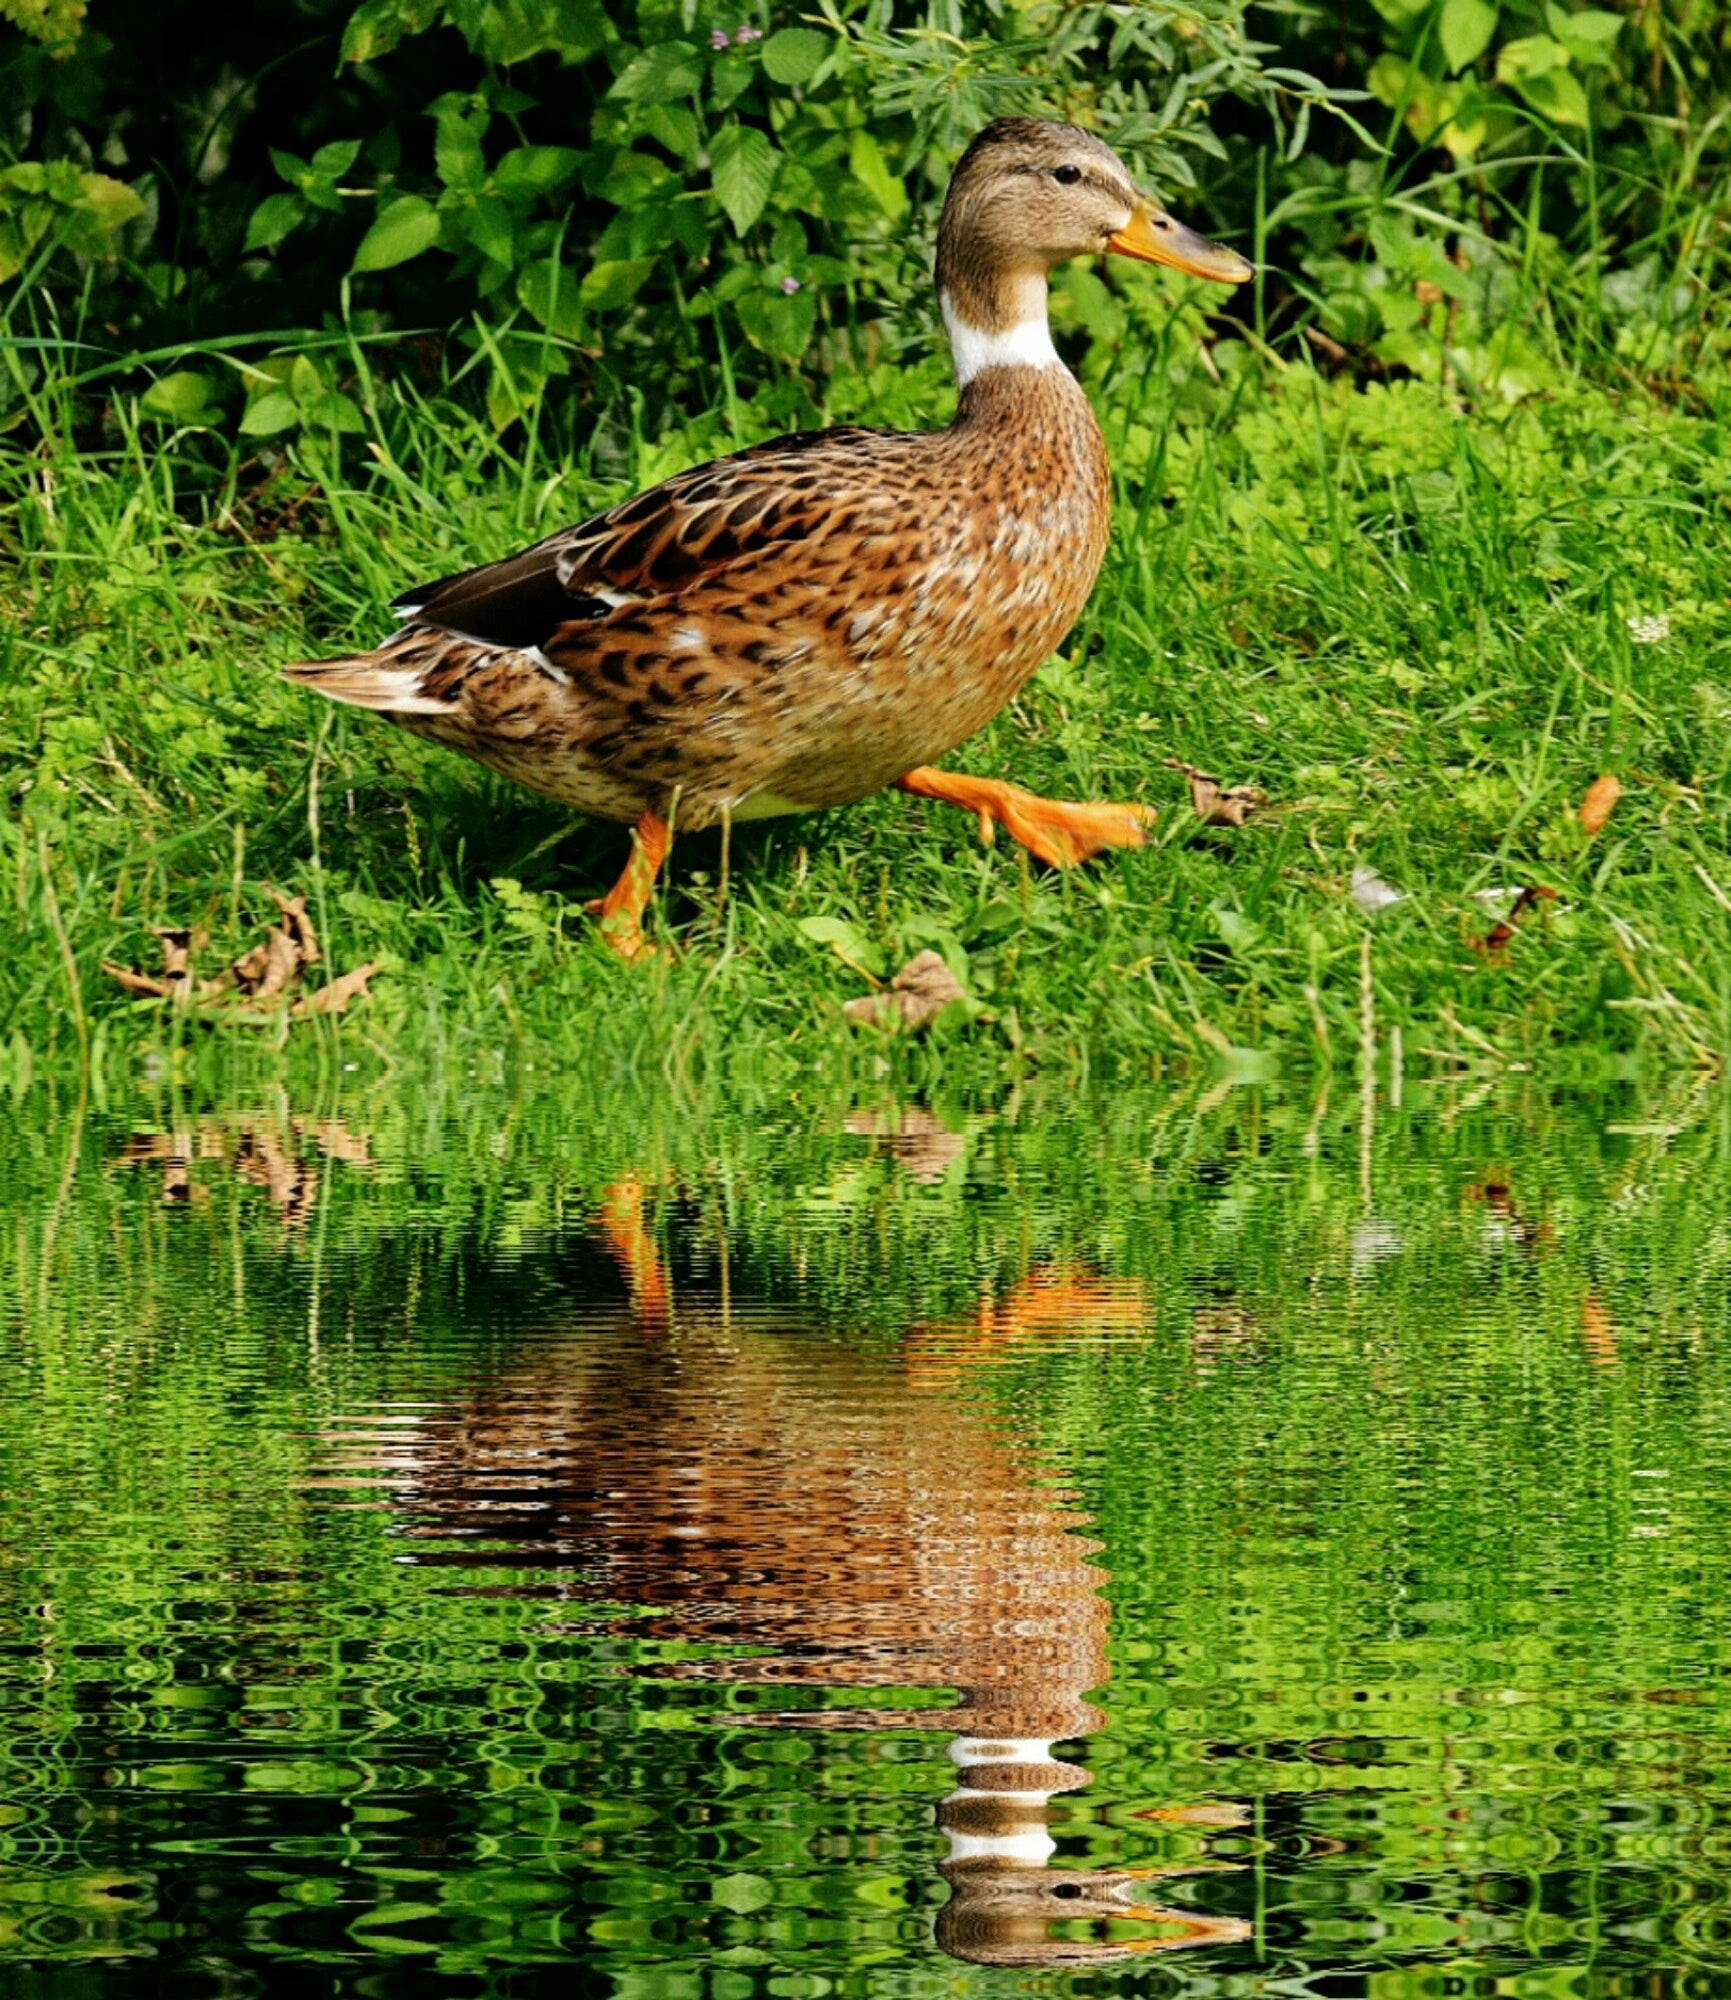 Brown White Black Duck, Animal, Avian, Bird, Duck, HQ Photo